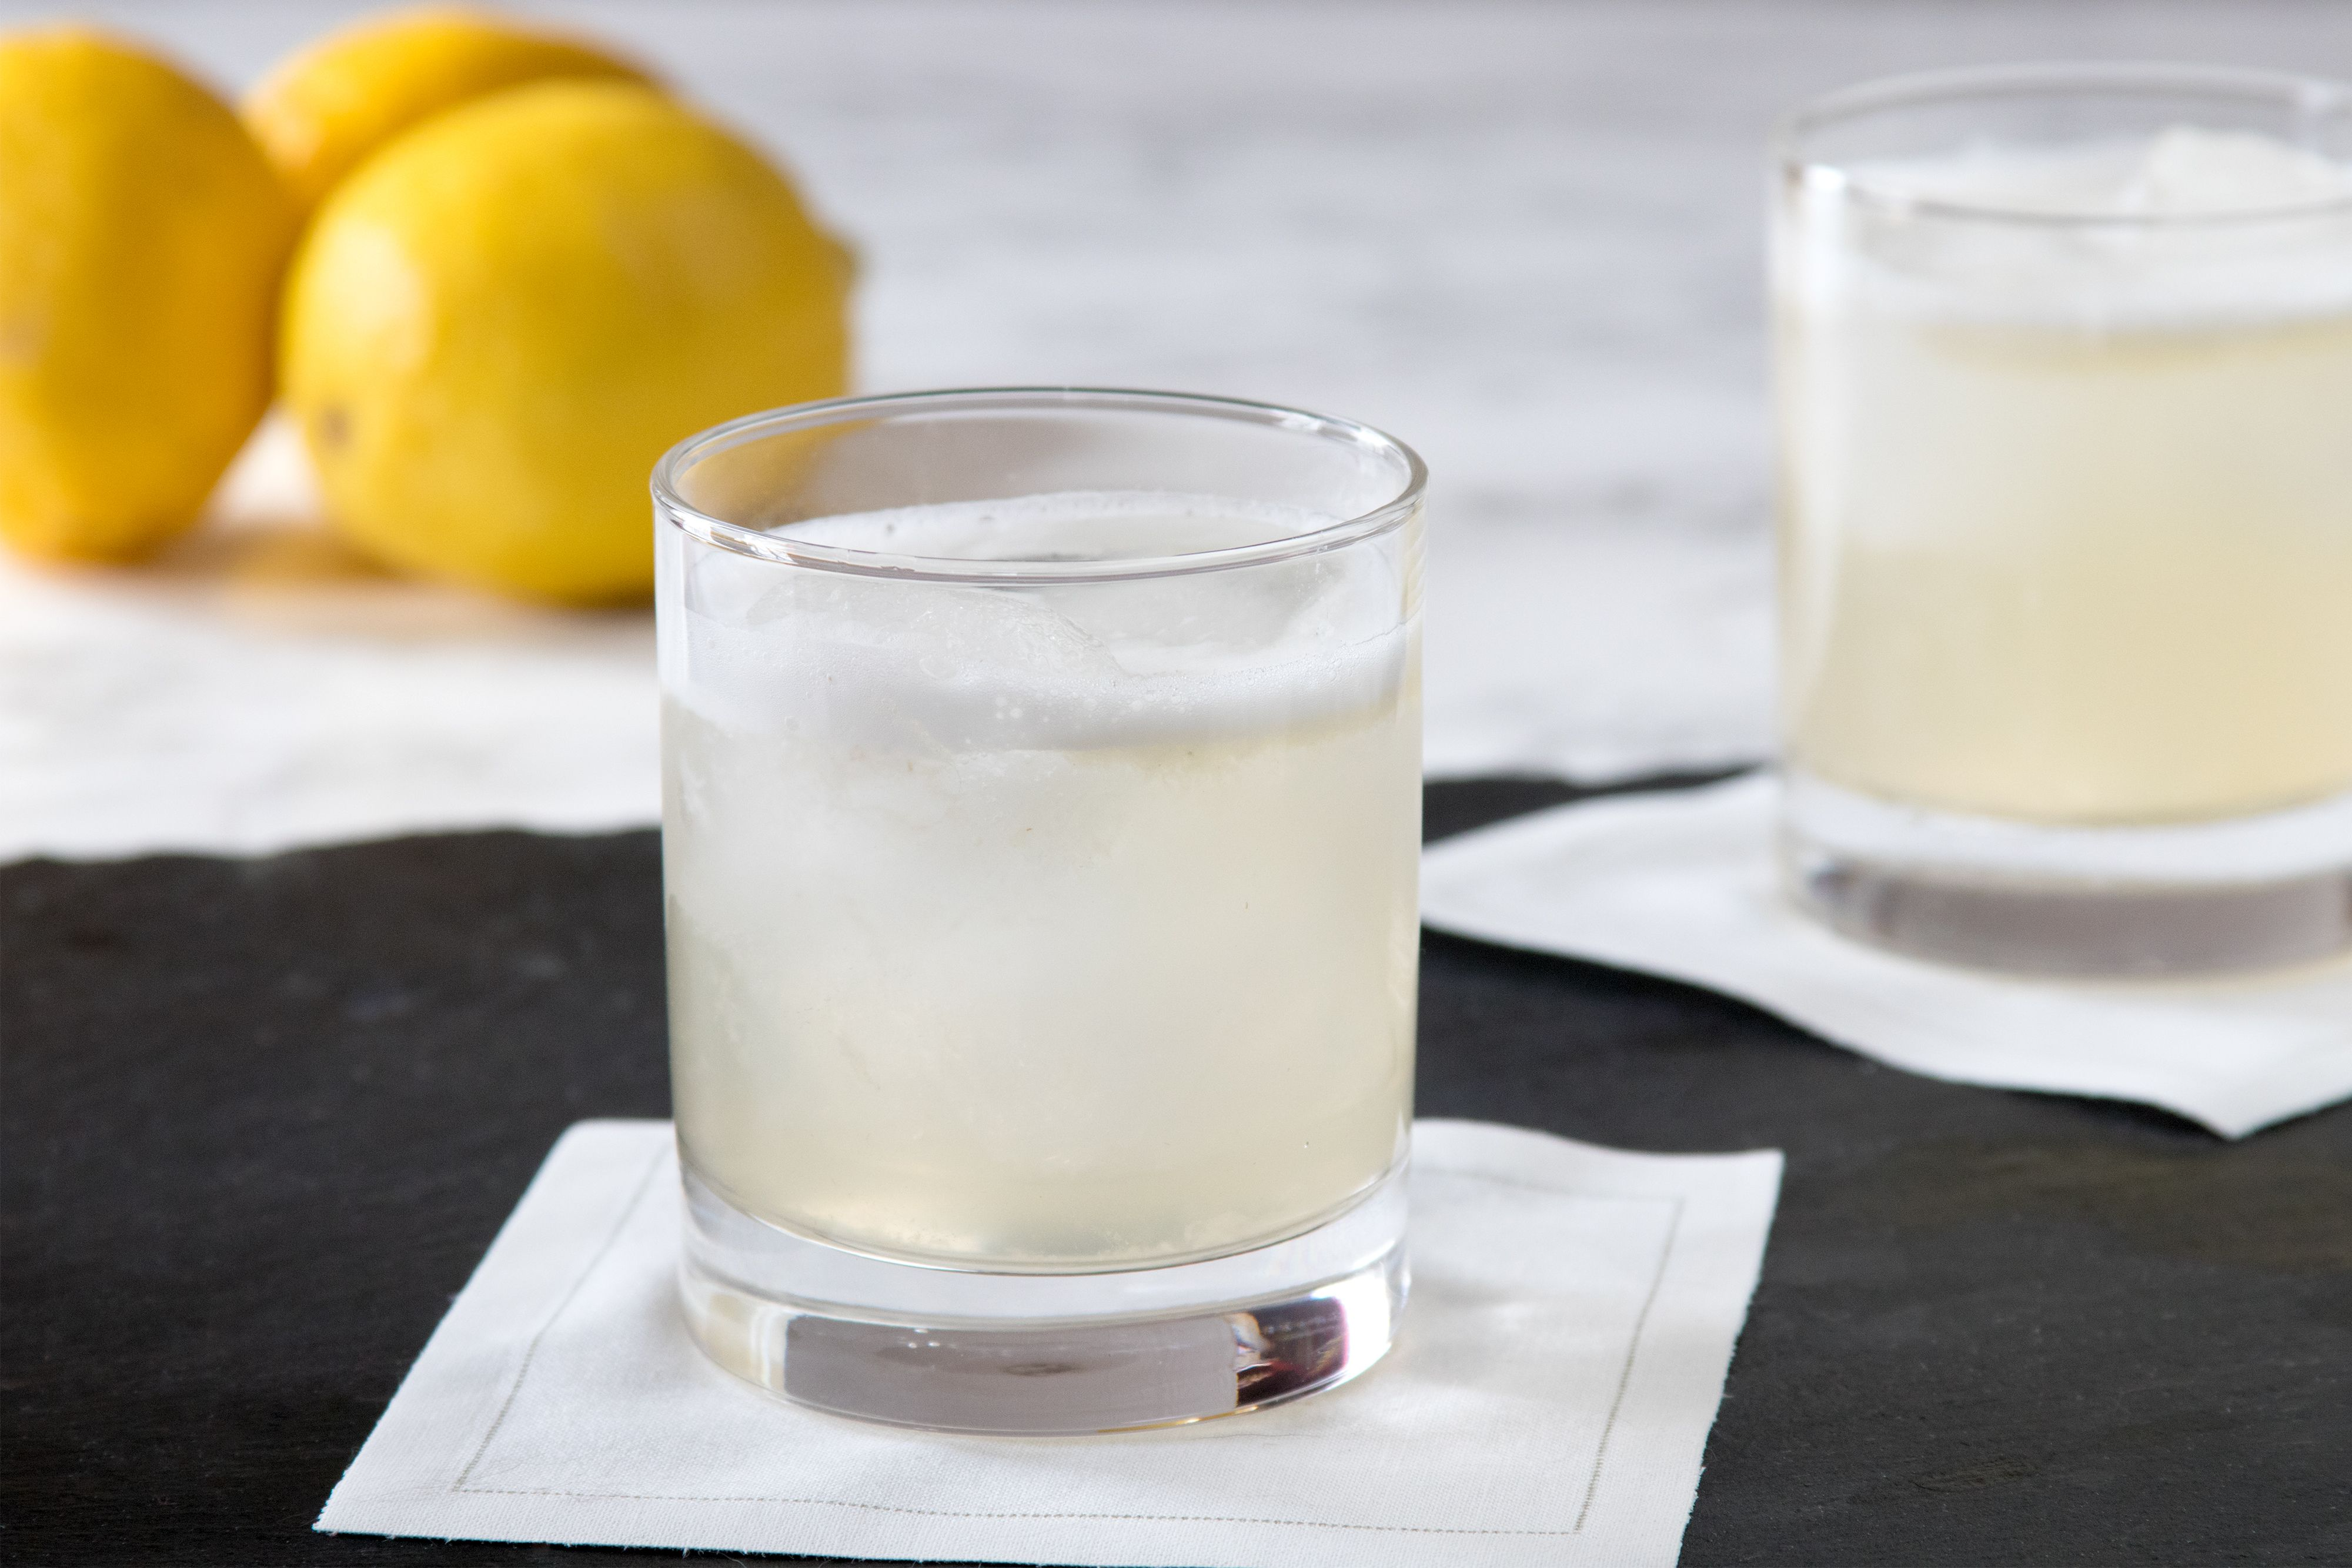 Shake Up a Classic Gin Sour When You Need a Bright, Tart Drink